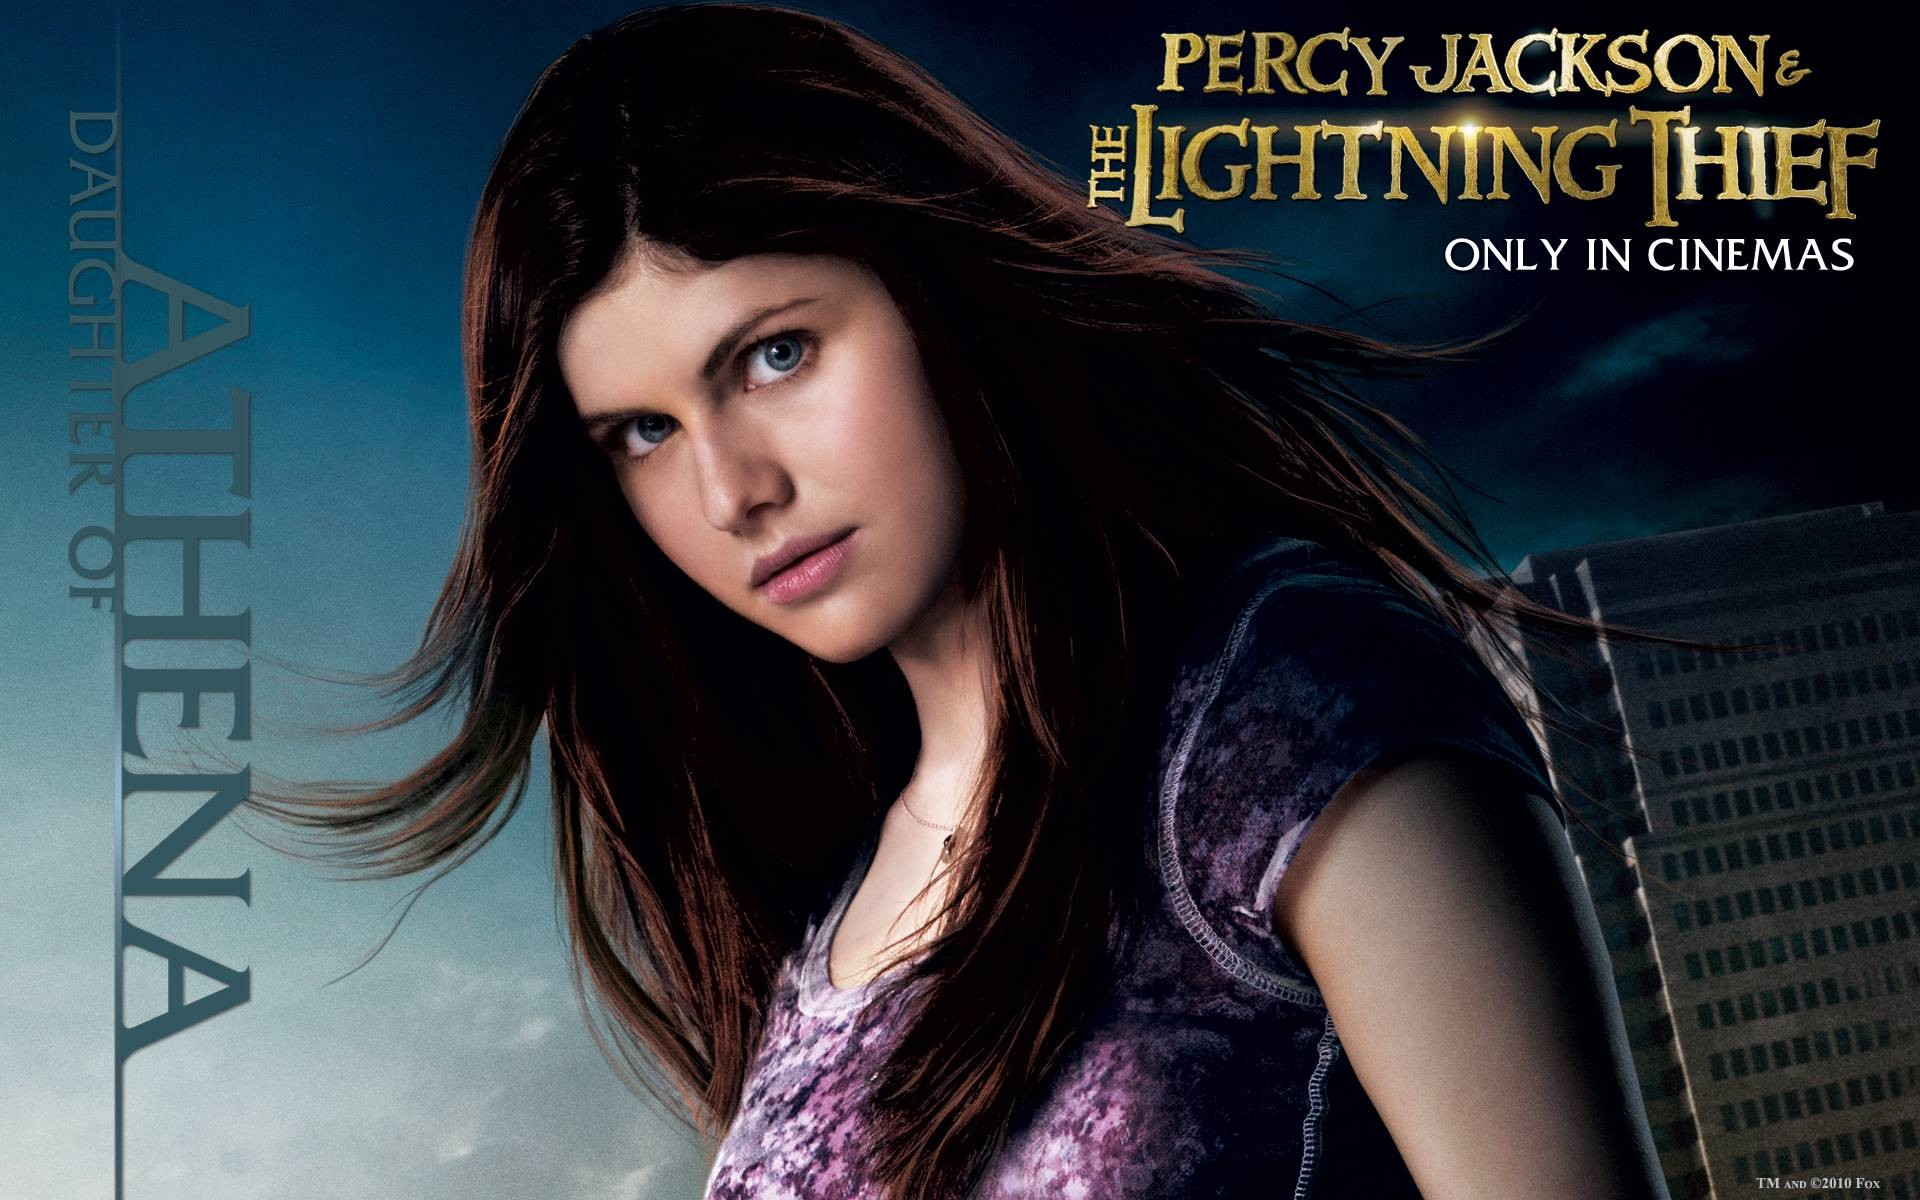 Percy jackson wallpaper fan art 56 images 1920x1200 percy jackson wallpaper by hanamephisto on deviantart percy jackson wallpaper voltagebd Image collections